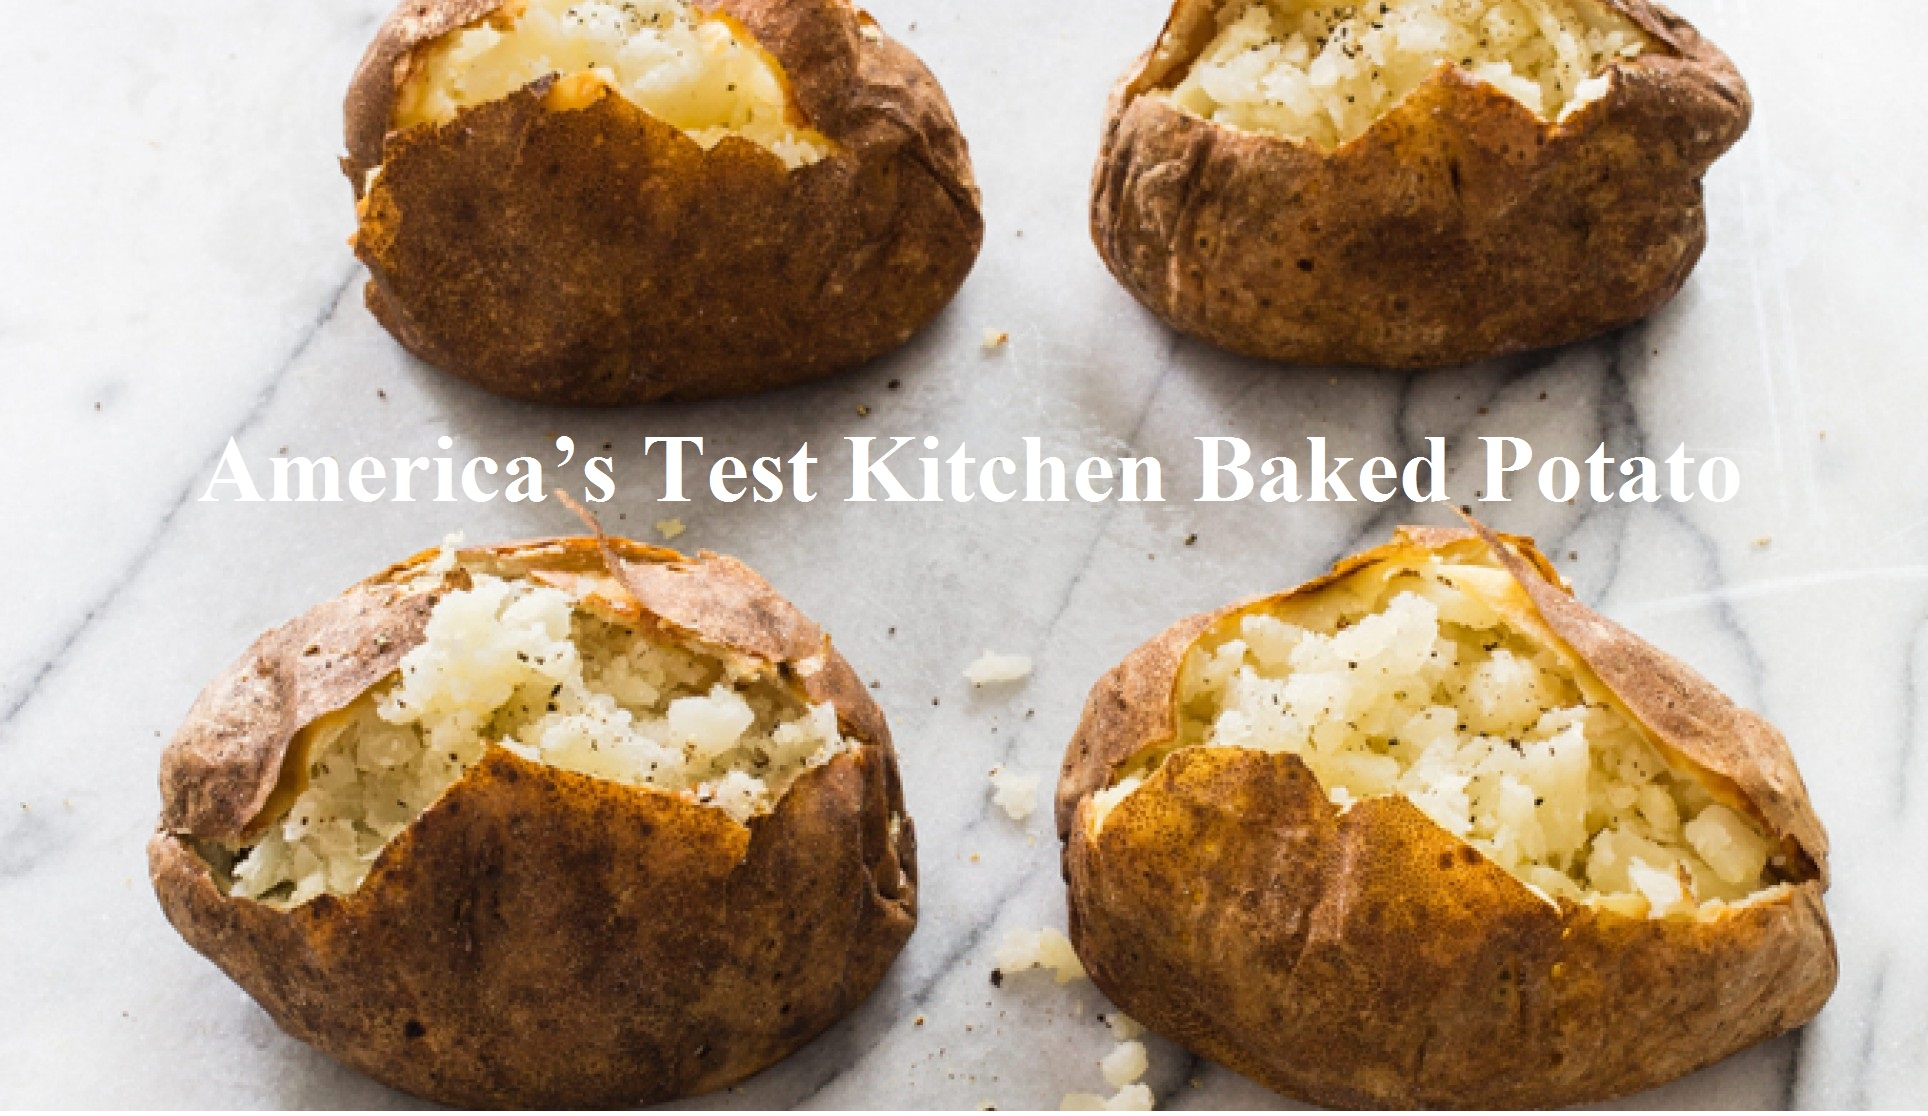 America's Test Kitchen Baked Potato: Best Baked Potato?